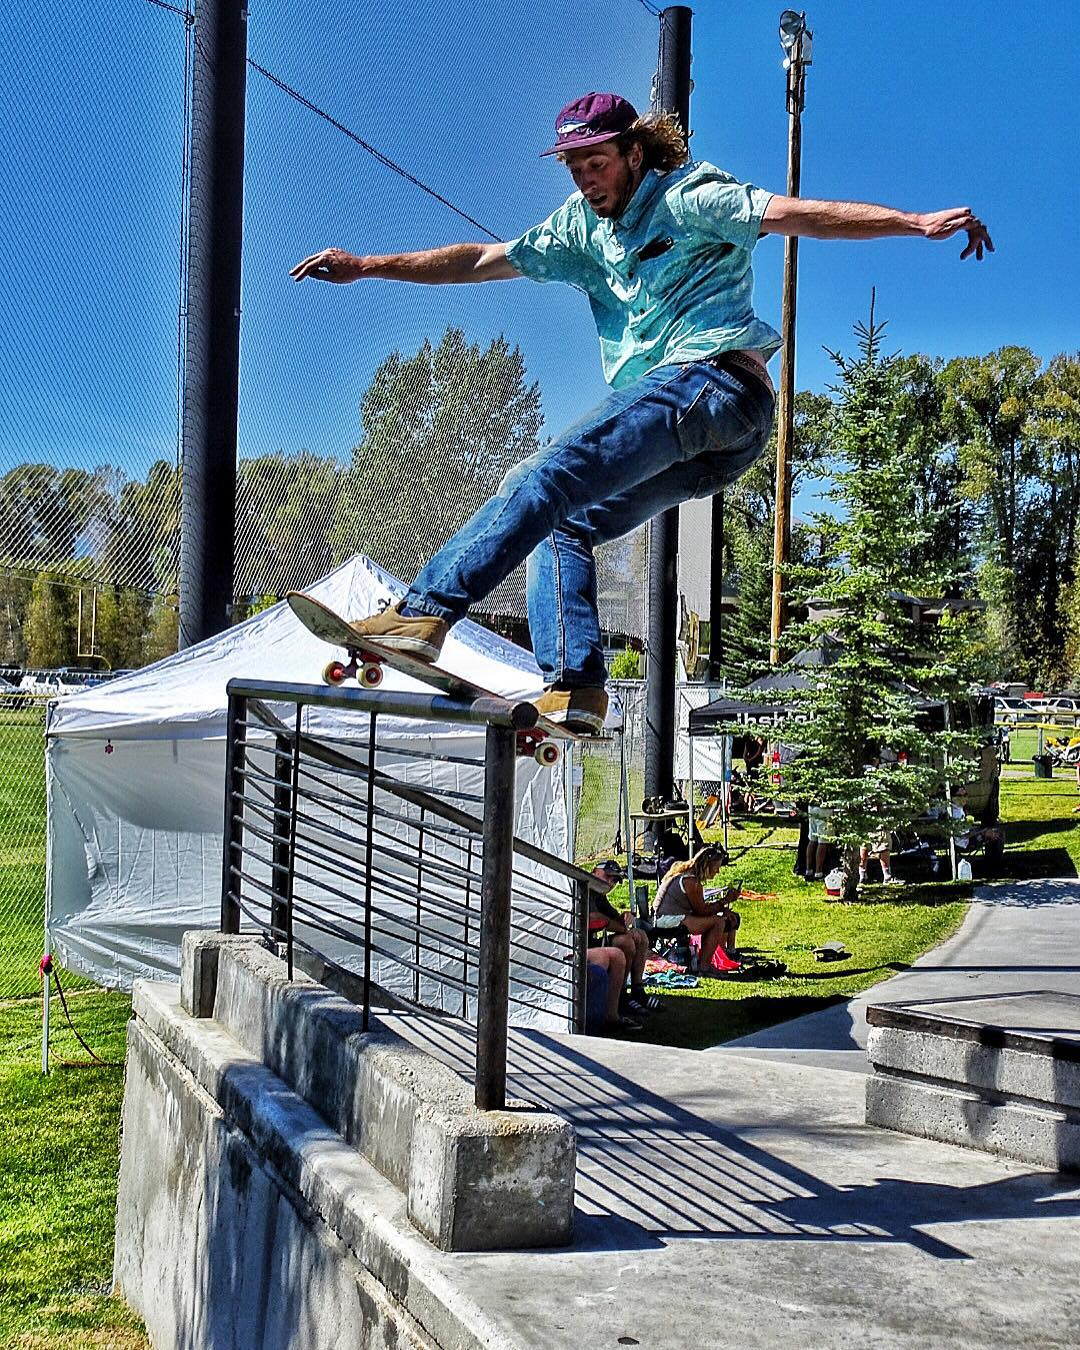 @skateswithfeathers kicks off the finals of the #wildwestskateboarding contest series here in #jacksonhole. Come out and support the kids! #avalon7 #liveactivated #skateboarding www.avalon7.co